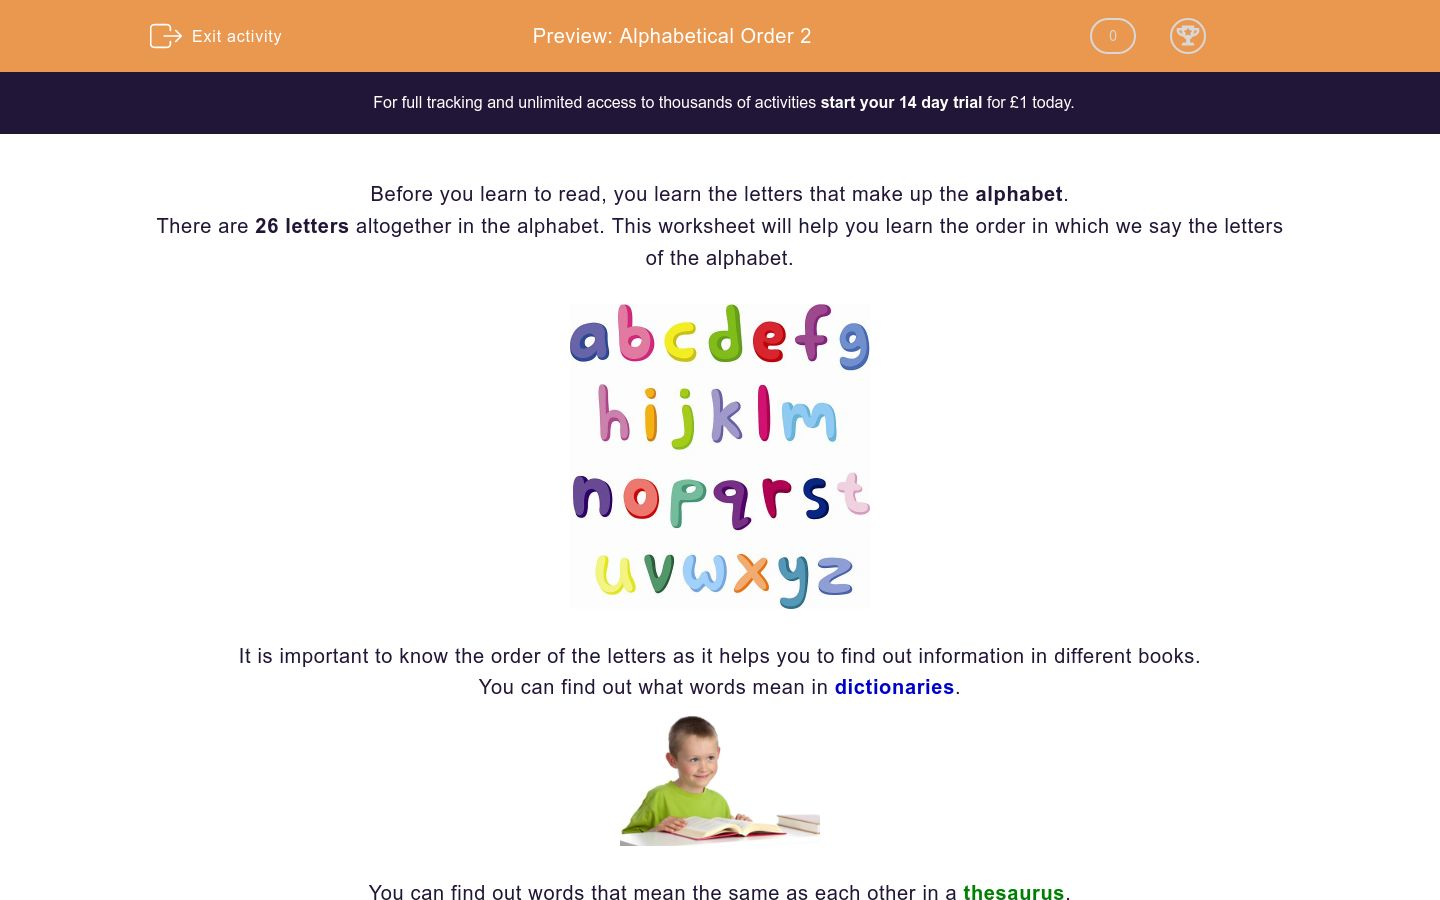 'Alphabetical Order 2' worksheet